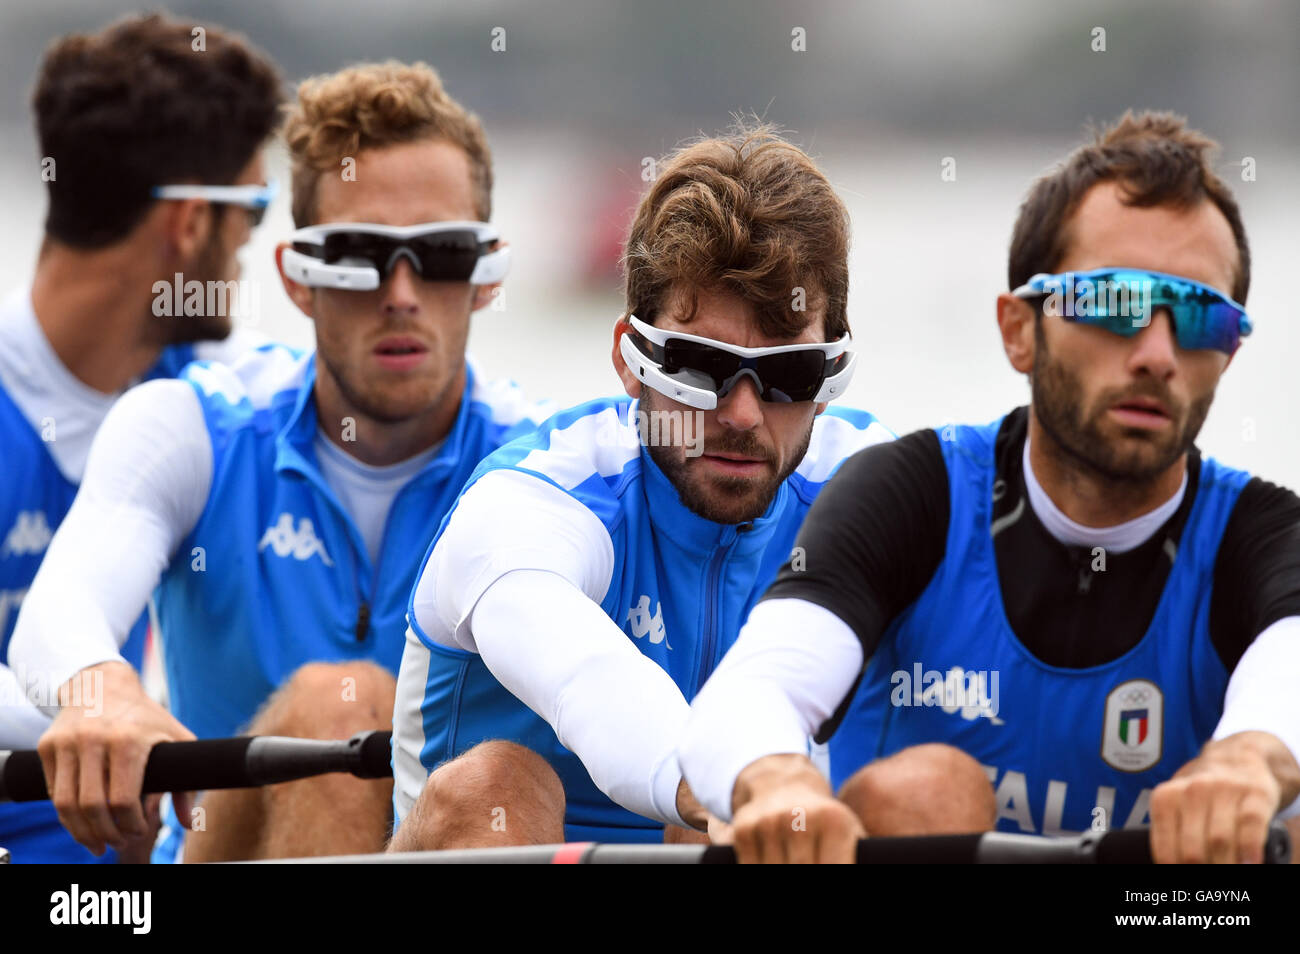 The lightweight four rowing team of Italy (L-R) Martino Goretti, Livio la Padula, Stefano Oppo and Pietro Willy Ruta wear smart glasses as they row during a training session at Lagoa Stadium prior to the Rio 2016 Olympic Games in Rio de Janeiro, Brazil, 4 August 2016. The Rio 2016 Olympic Games take place from 05 to 21 August. Photo: Soeren Stache/dpa Stock Photo